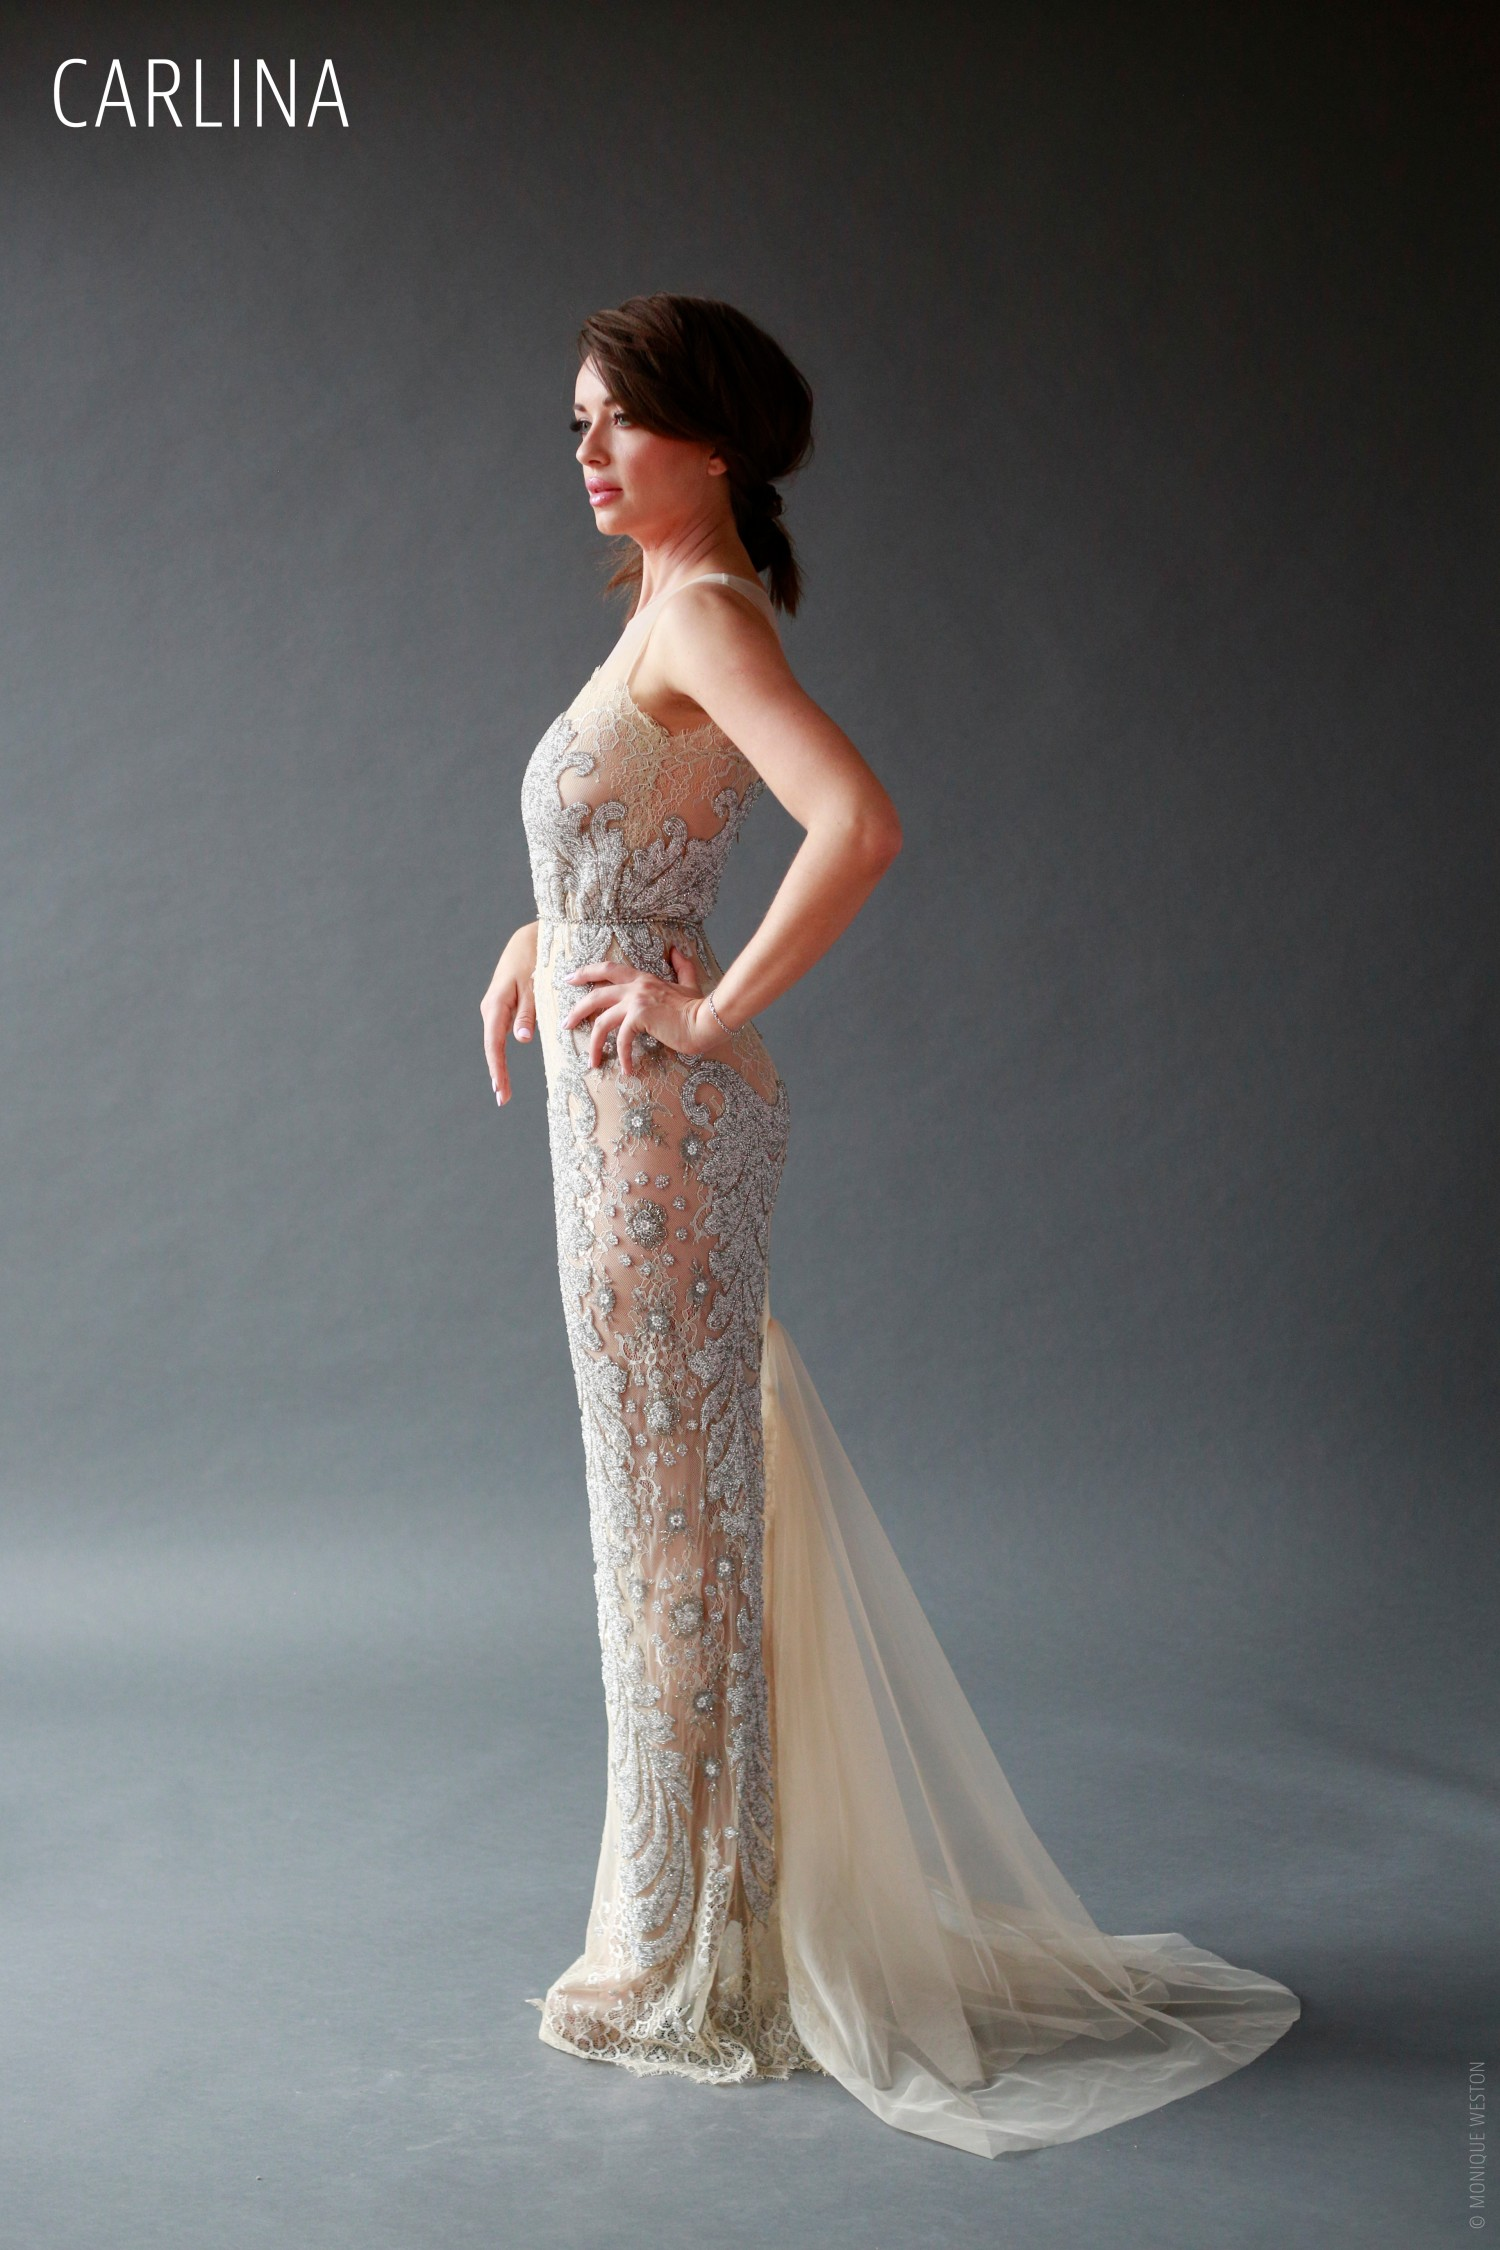 Di Carlo Couture - Carlina